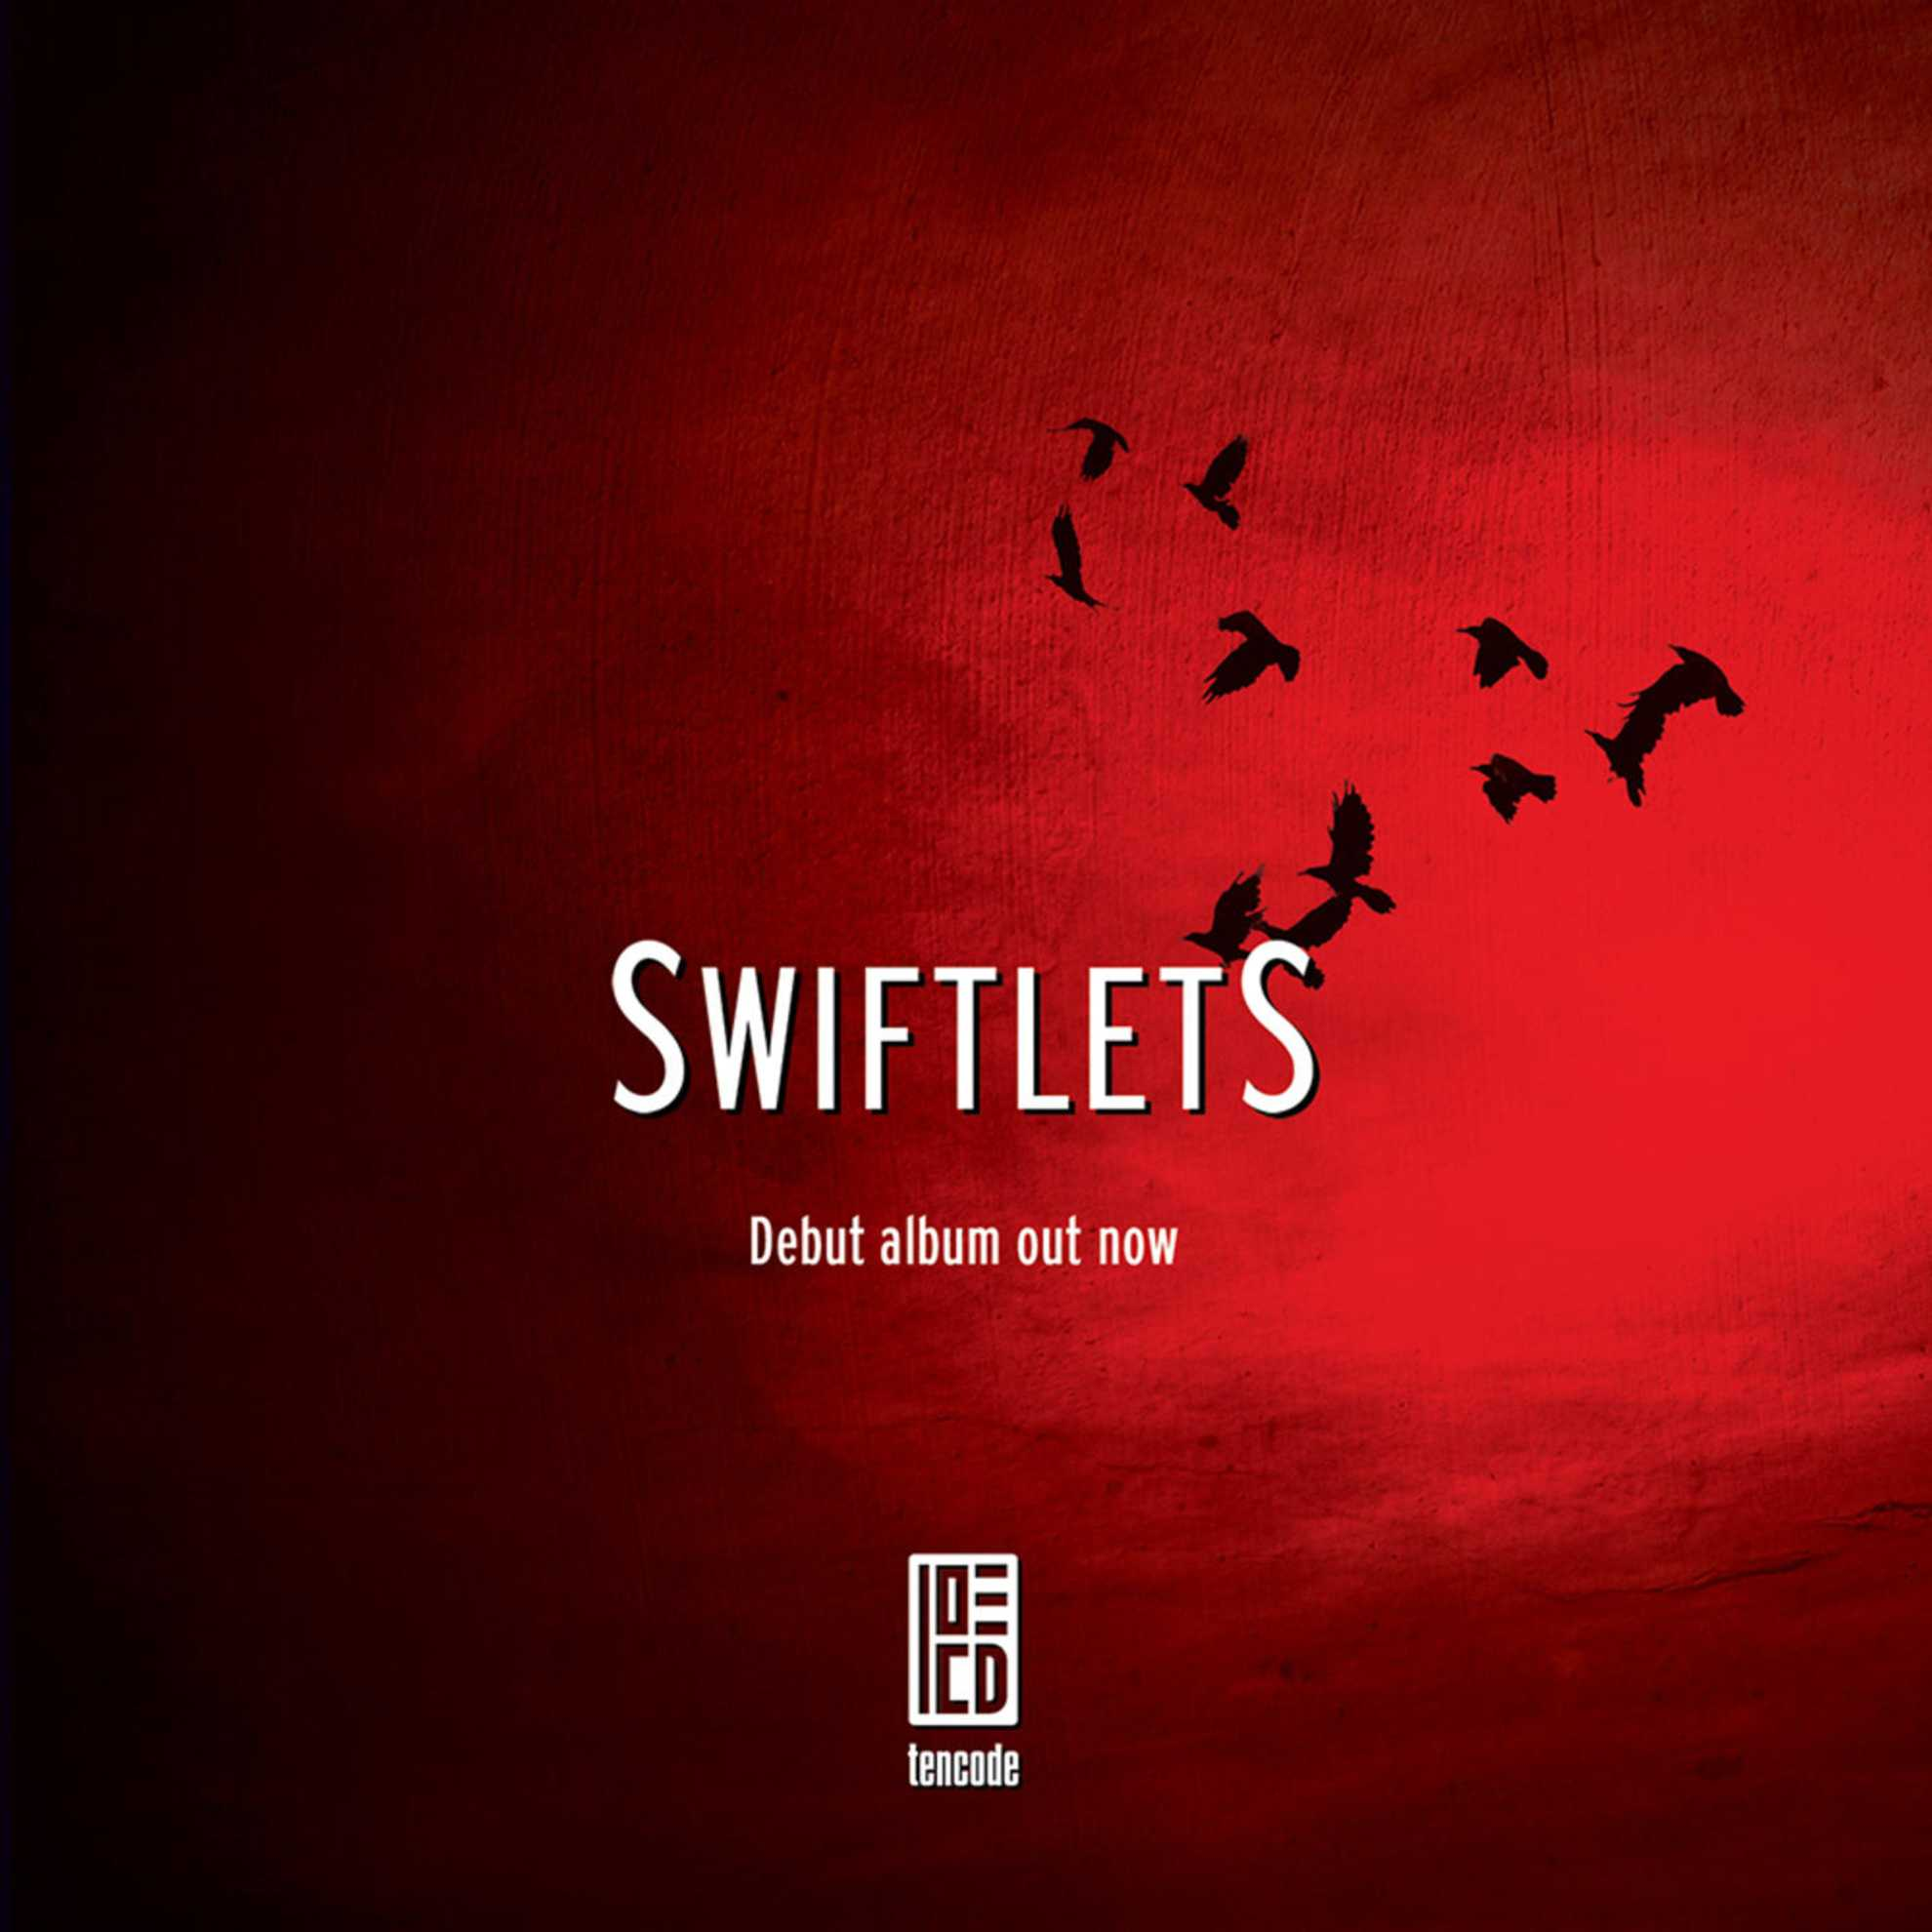 10 Code - Swiftlets